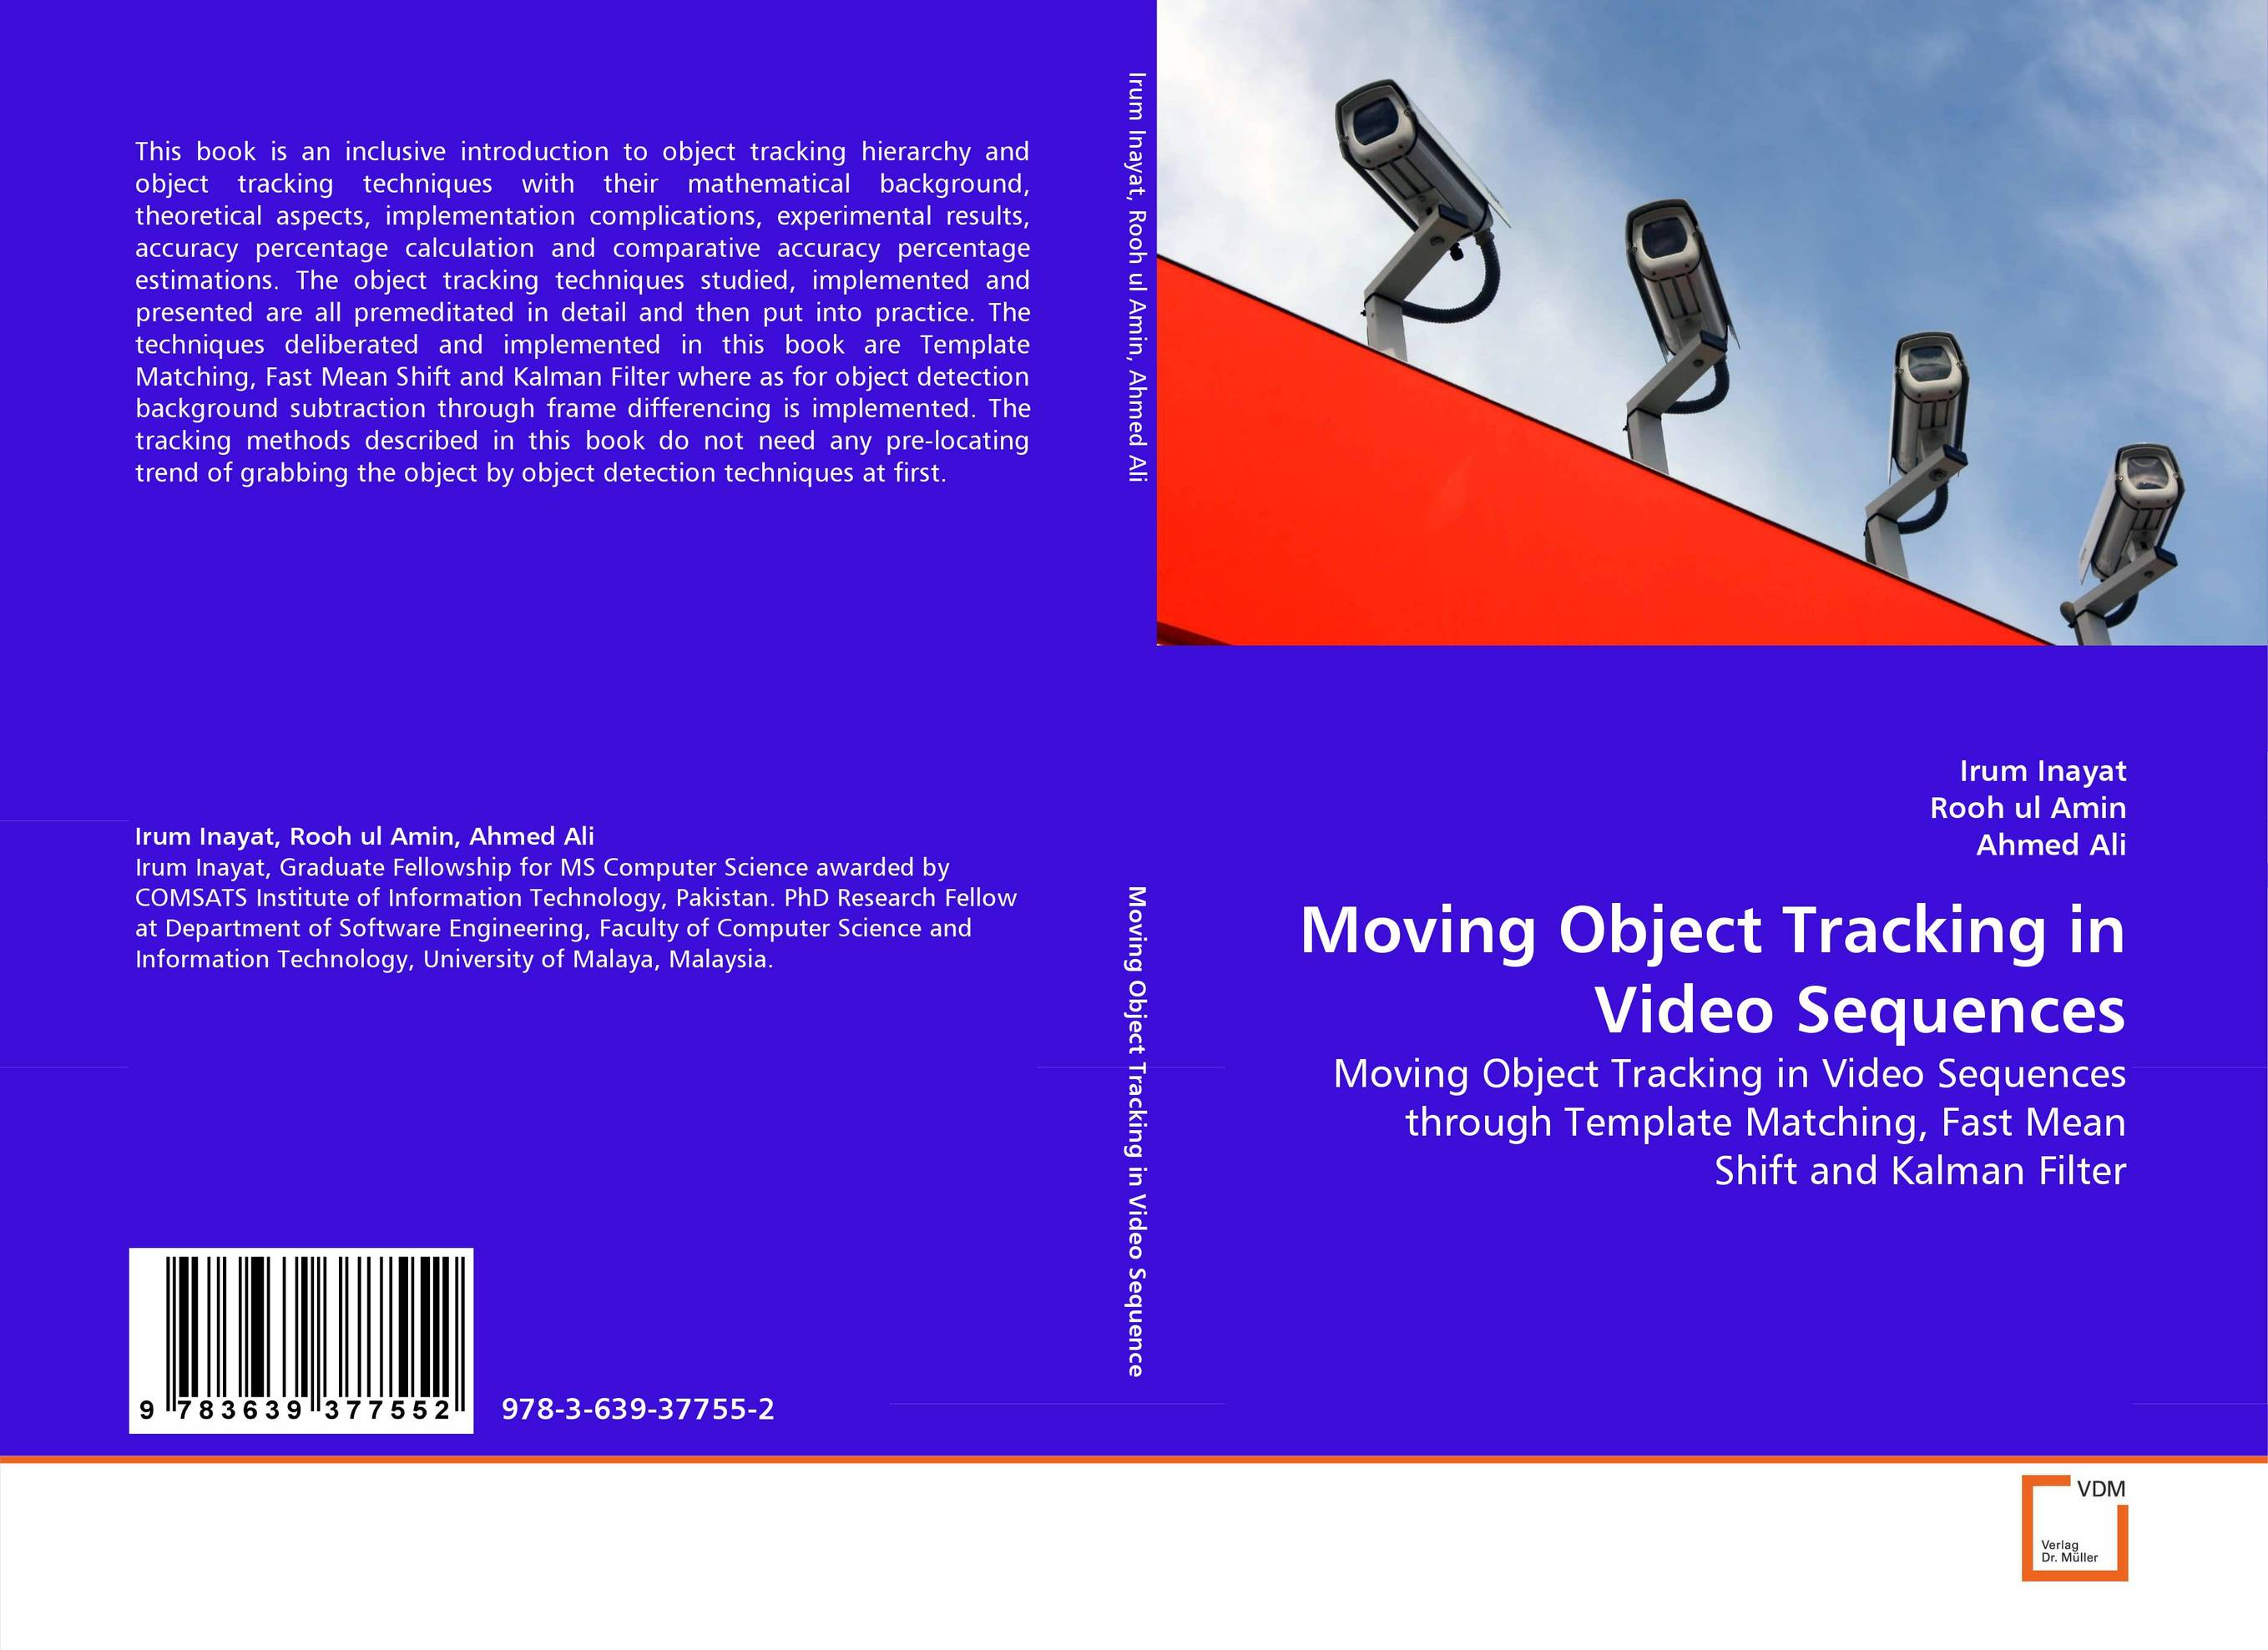 Moving Object Tracking in Video Sequences video object tracking